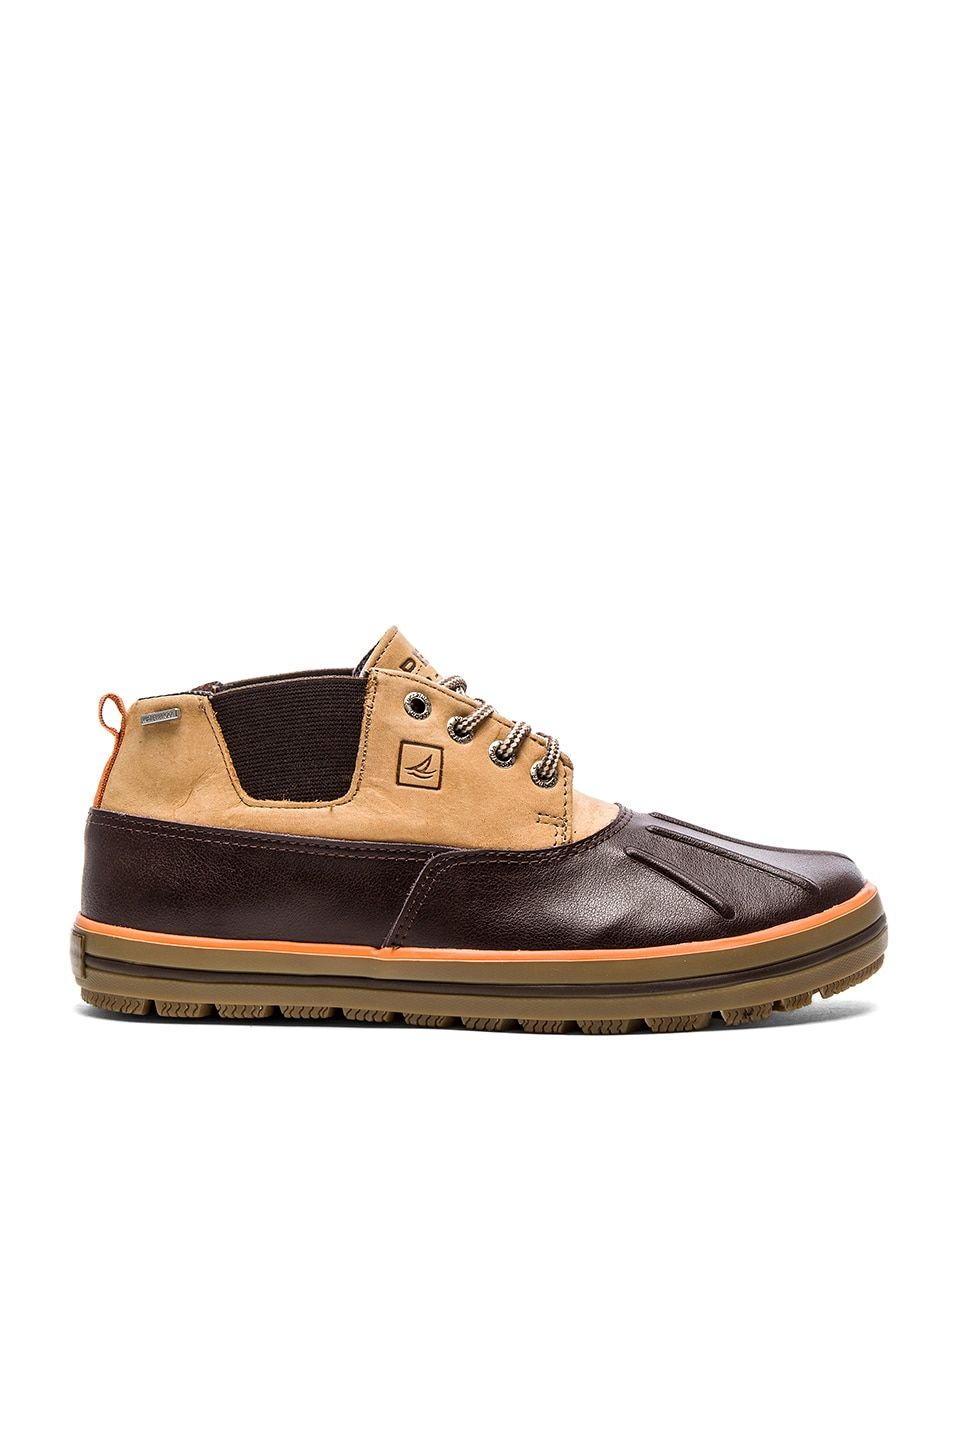 Sperry Top-Sider Fowl Weather in Brown Tan